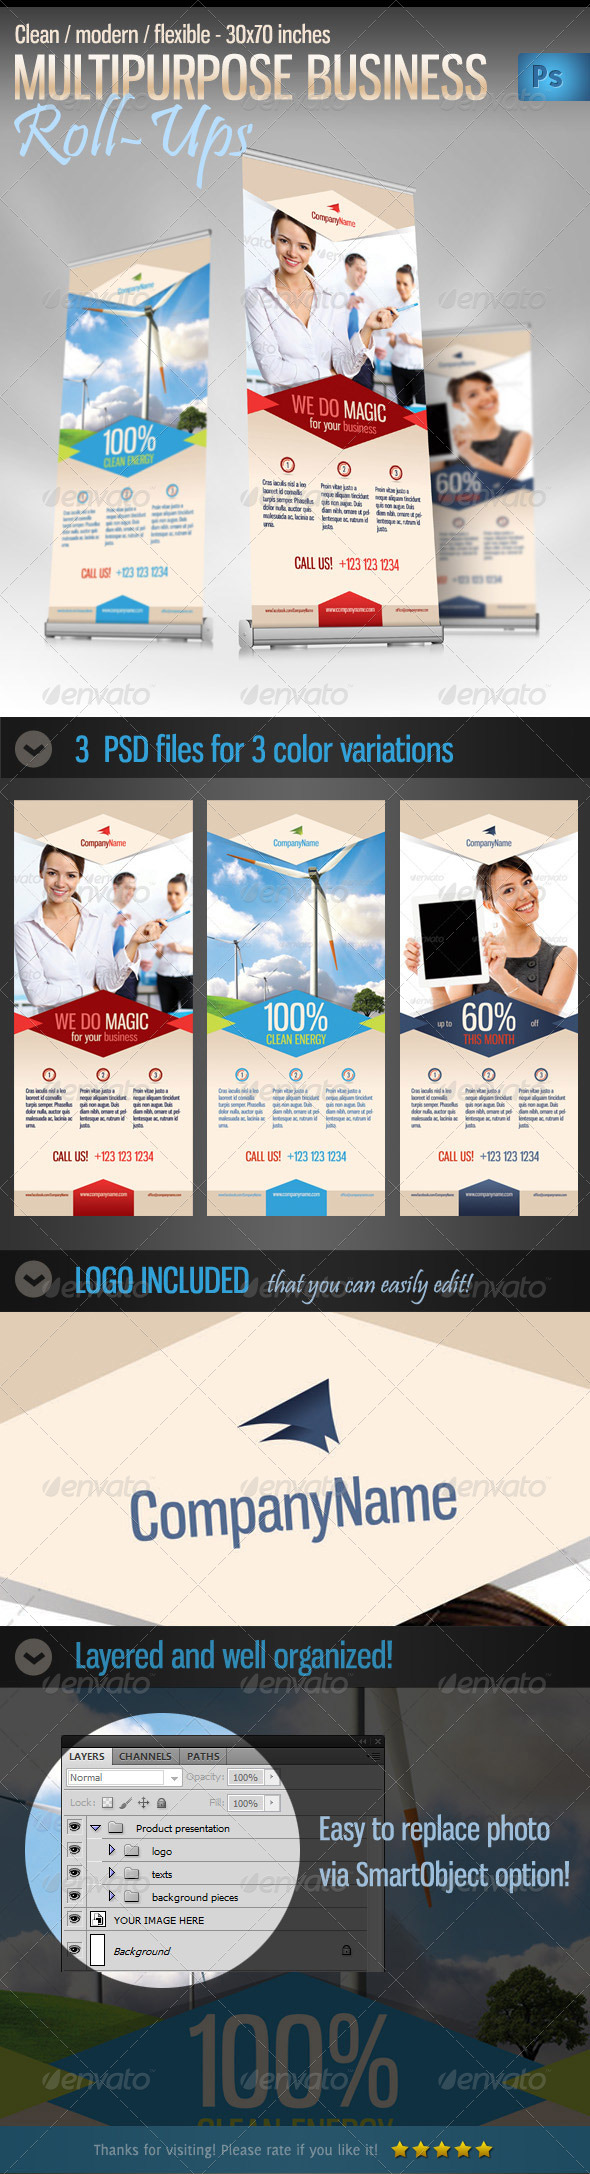 GraphicRiver Multipurpose Business Product Roll-up Banner 4394124